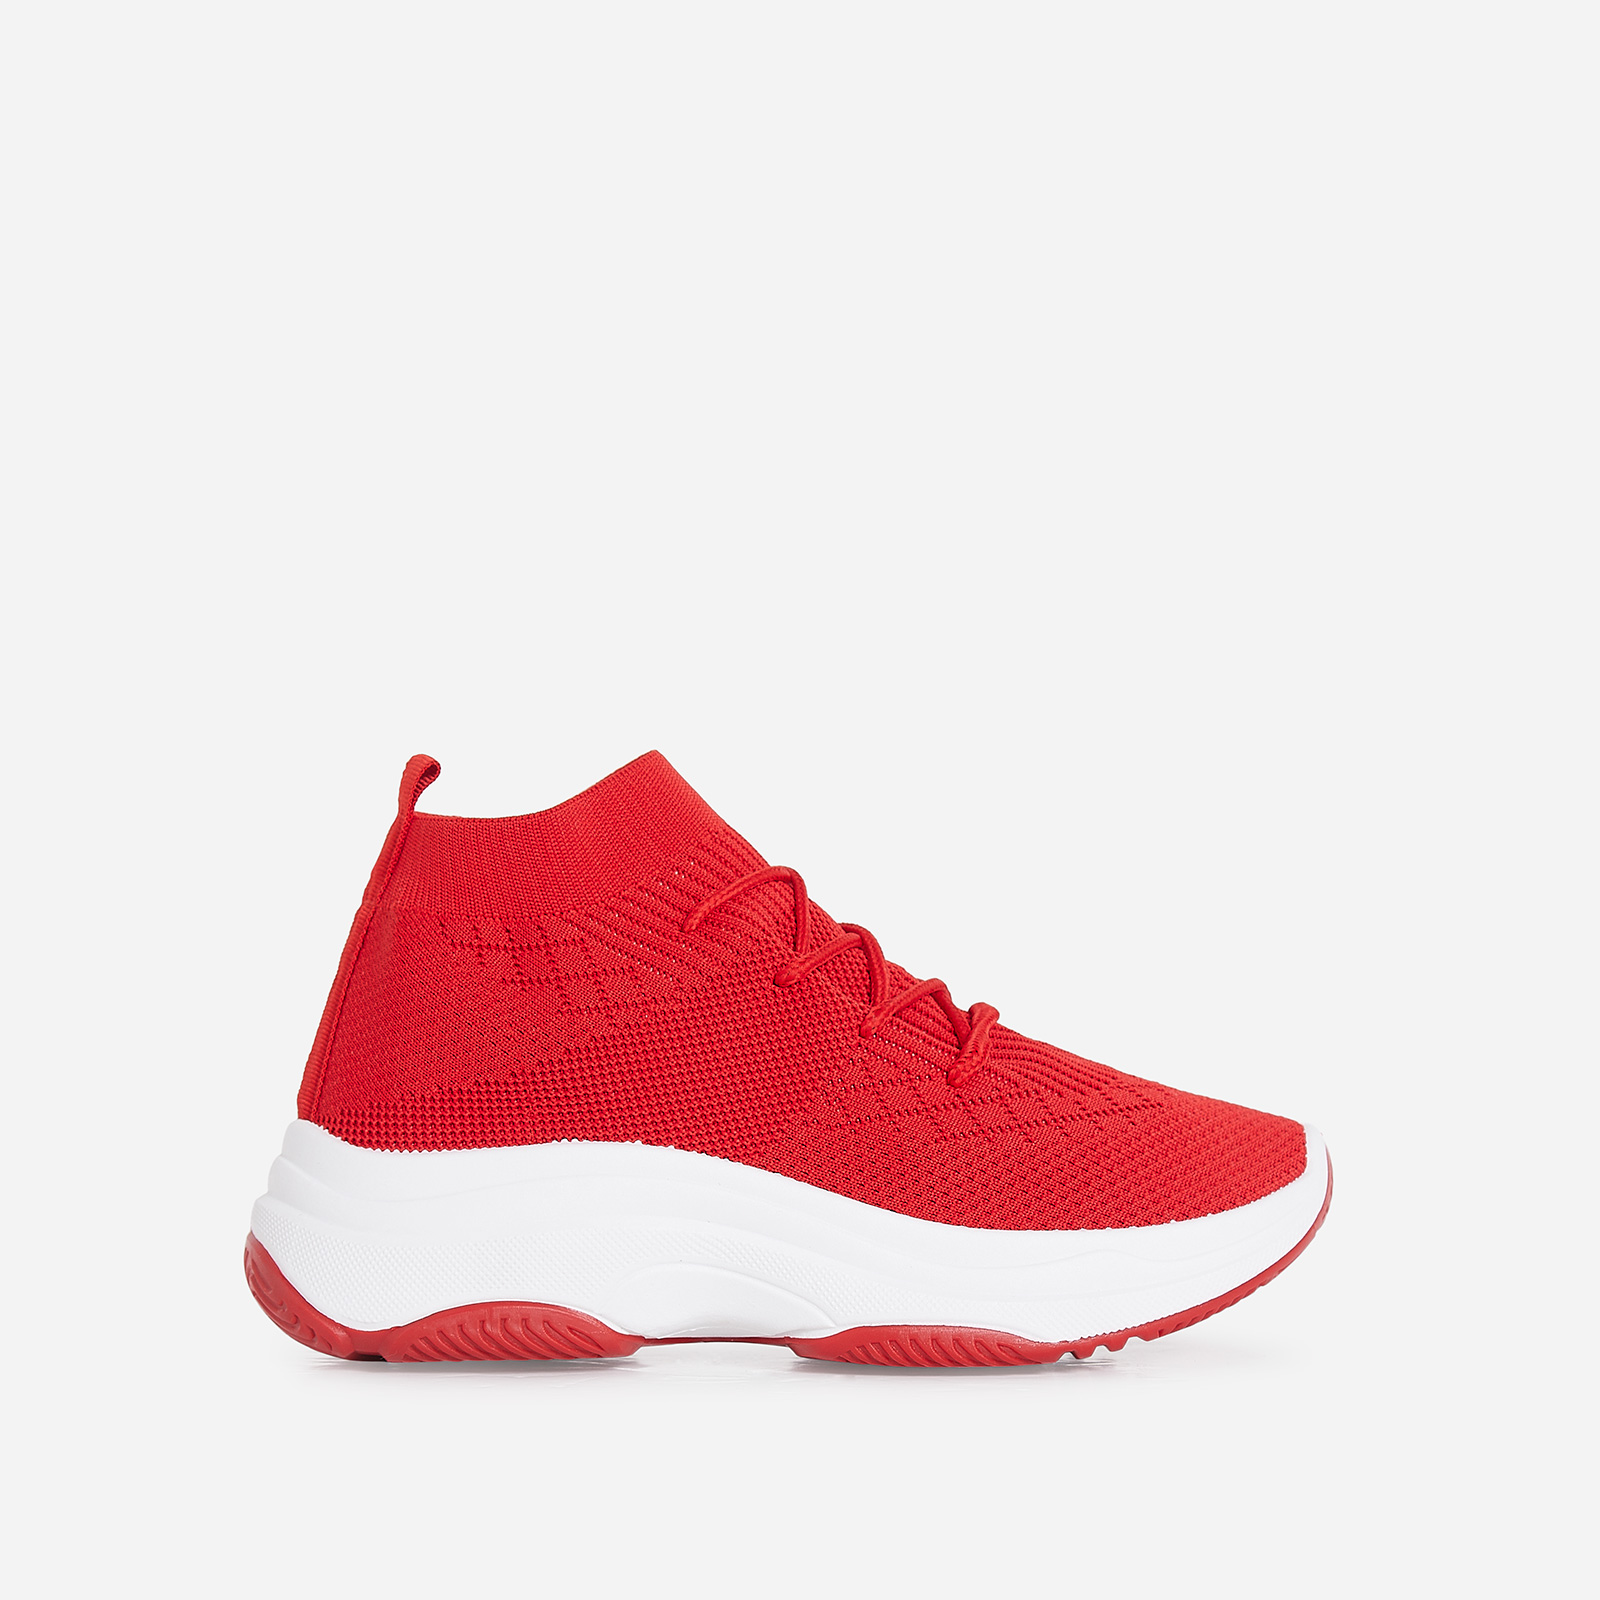 Dallas Chunky Sole Trainer In Red Knit